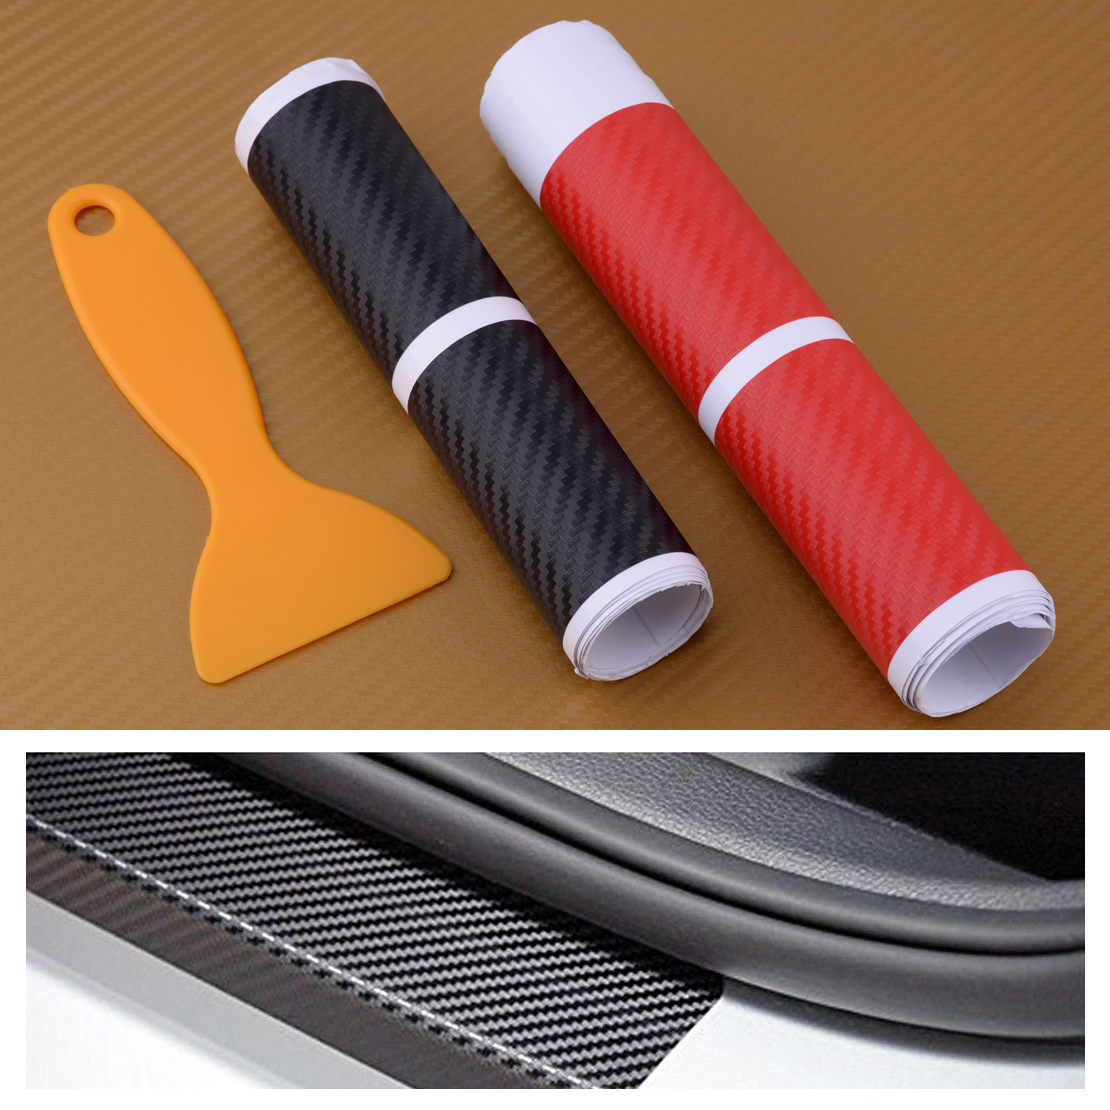 Details about 4x car door plate cover carbon fiber look decal sill scuff anti scratch sticker